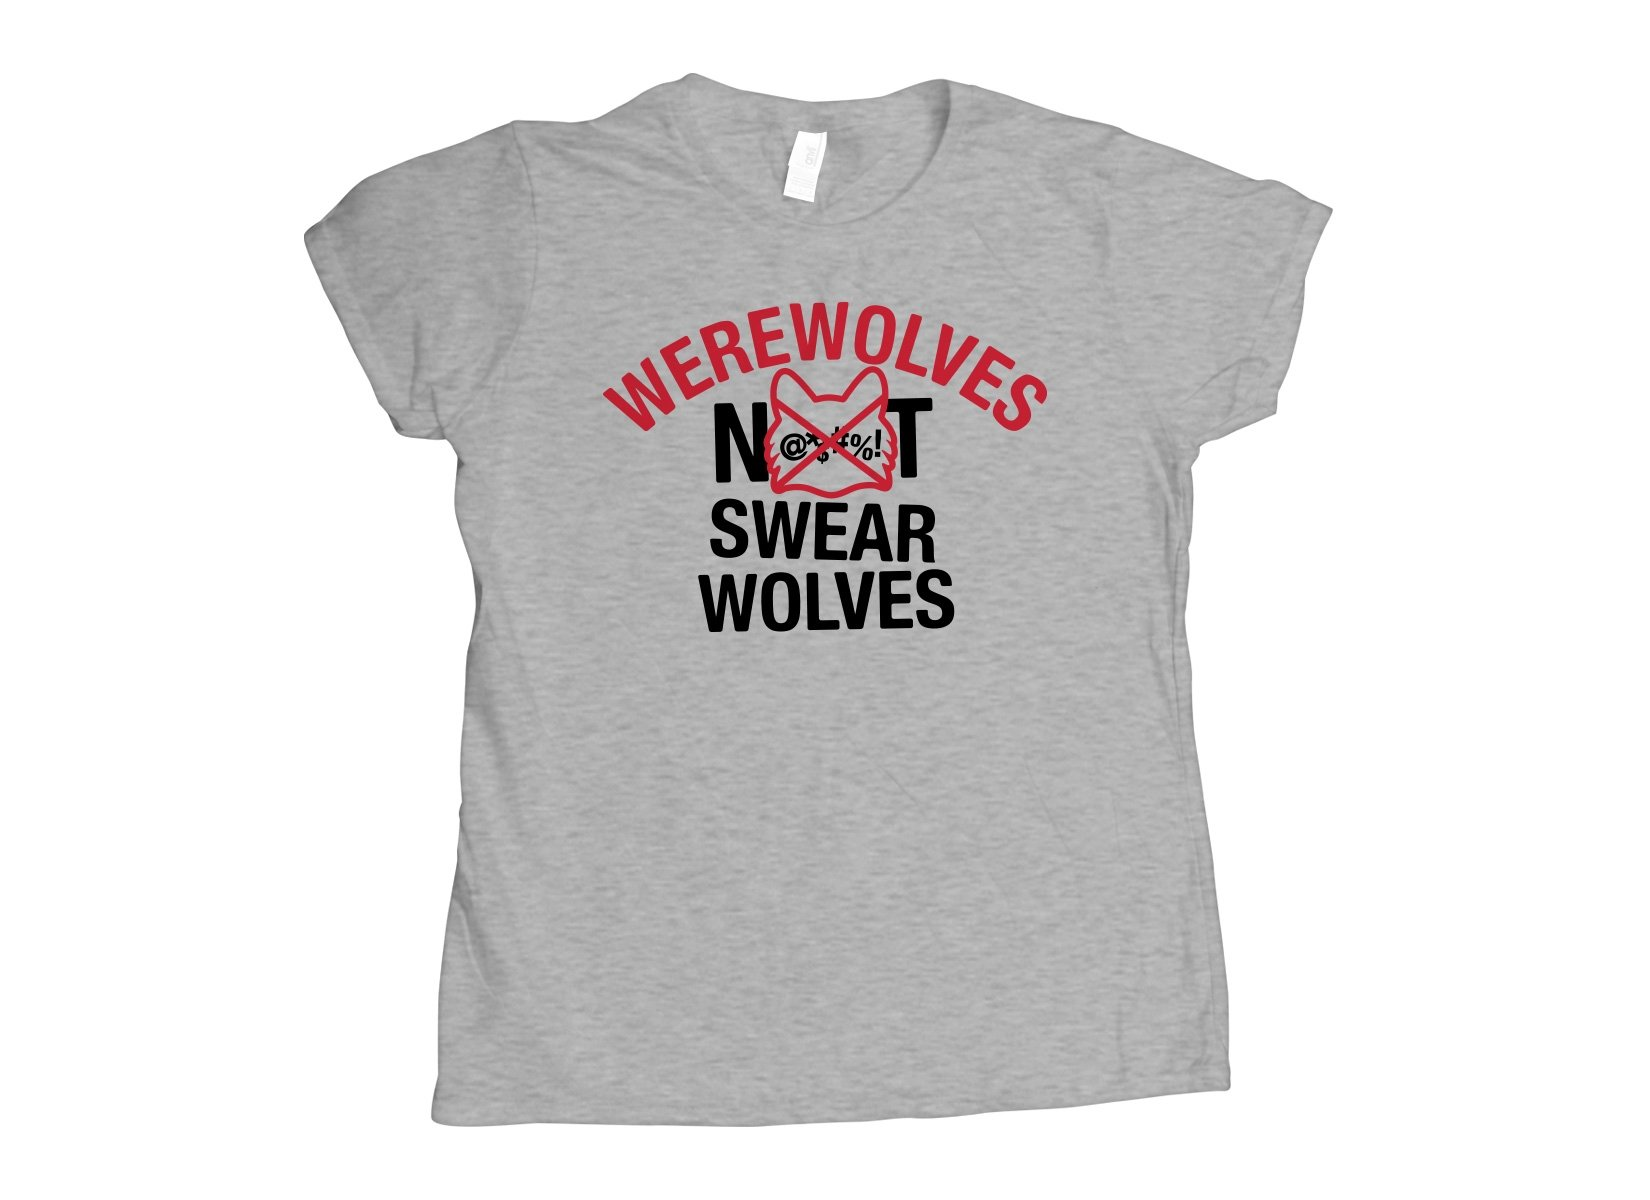 Werewolves Not Swearwolves on Womens T-Shirt